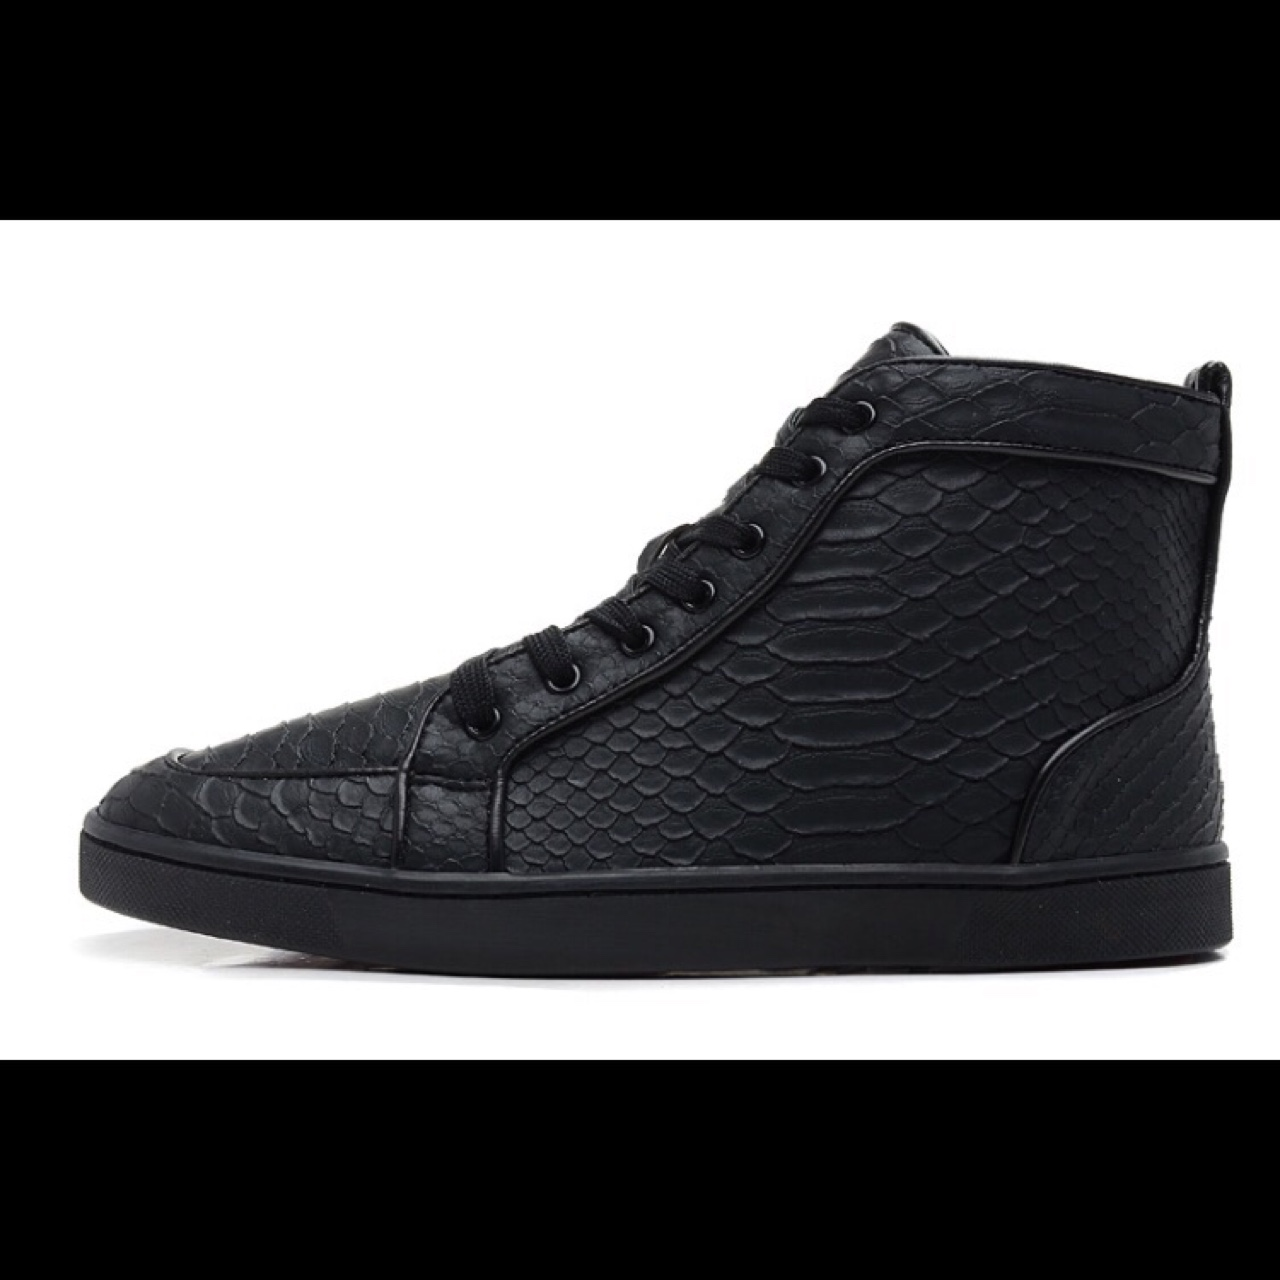 outlet store cacc9 a9509 Louboutin hi tops crocodile skin all sizes available - Depop